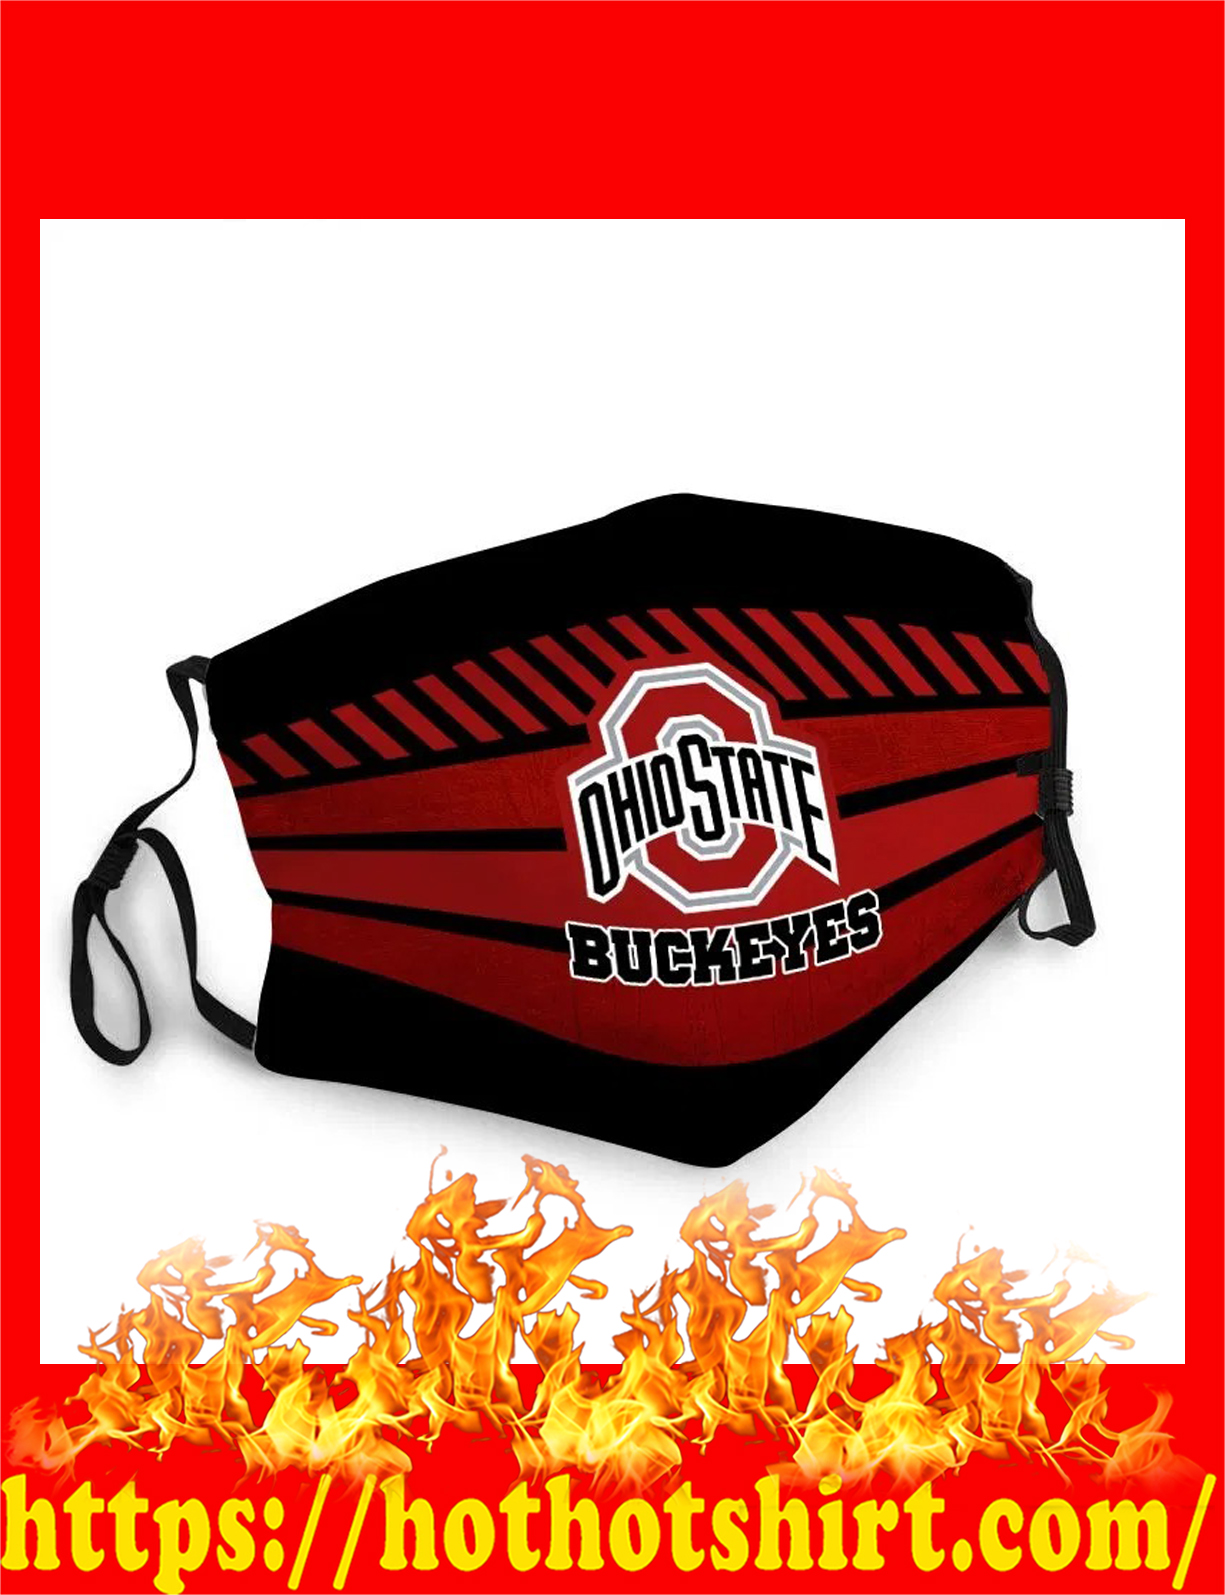 Ohio state buckeyes cloth mask - detail